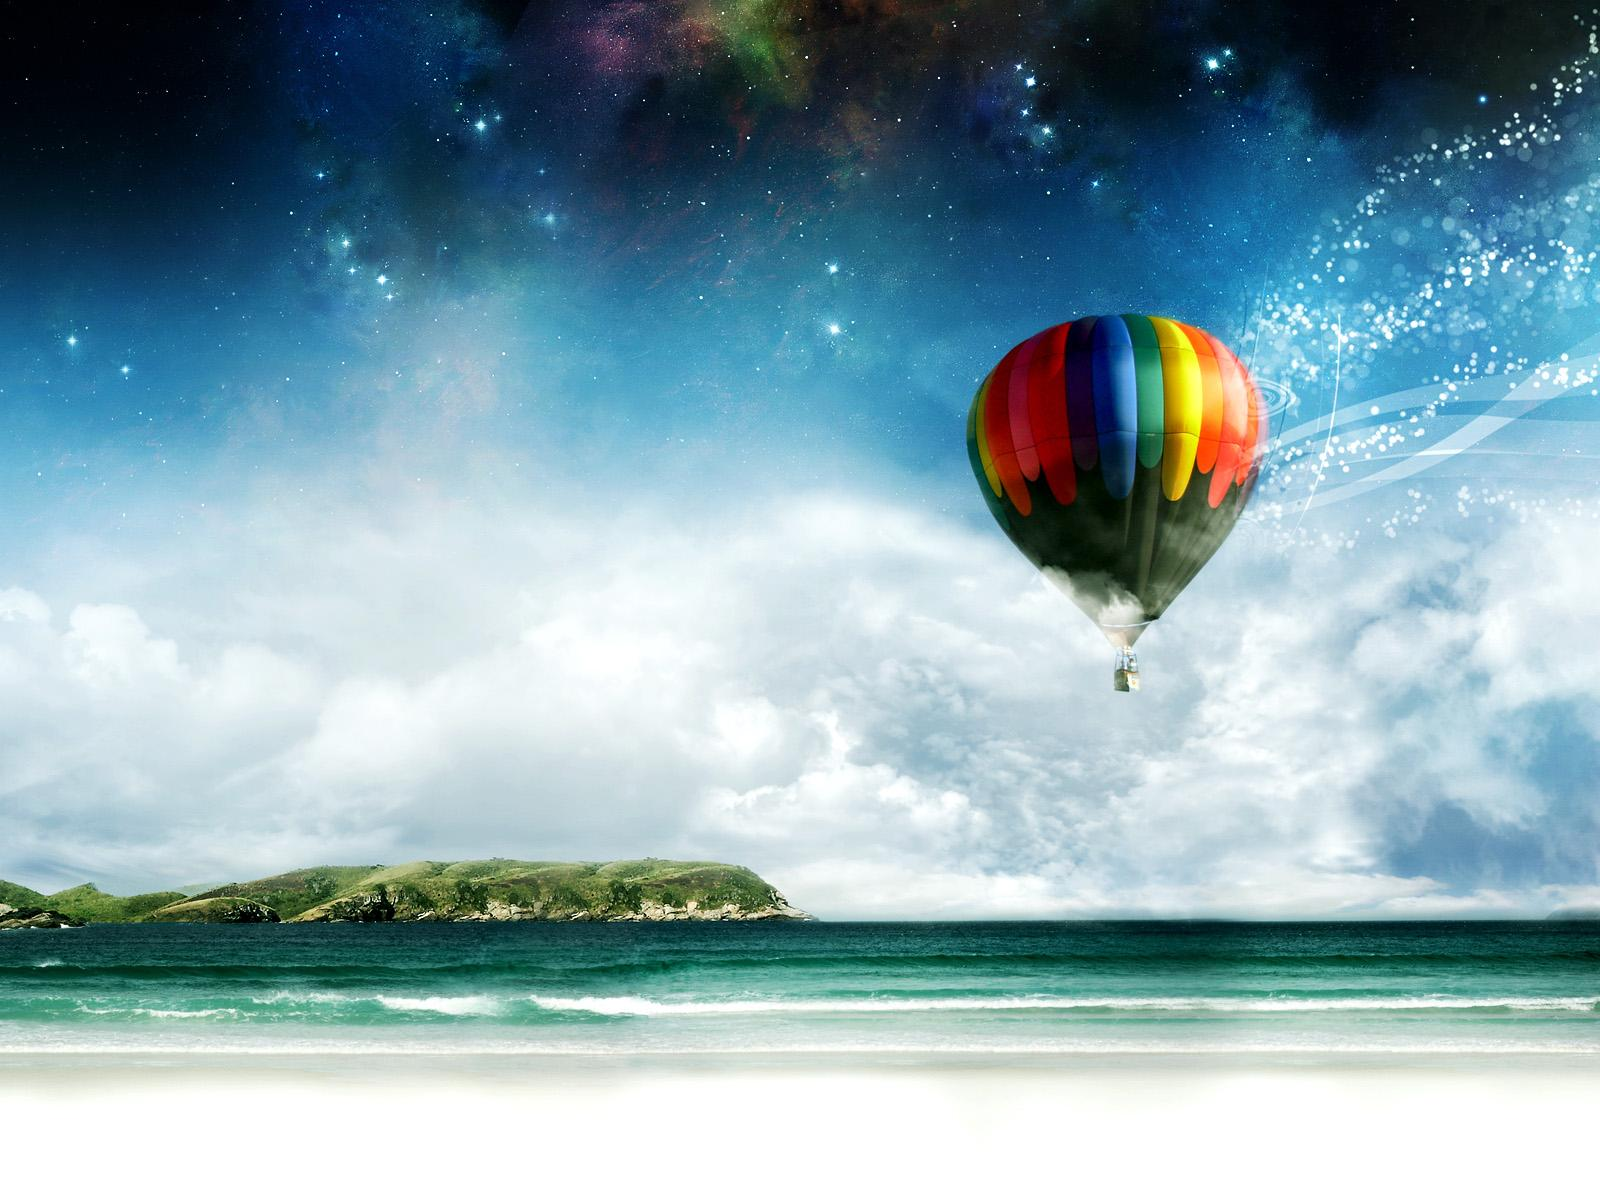 Hot Air Balloon wallpaper  wallpaper free download 1600x1200